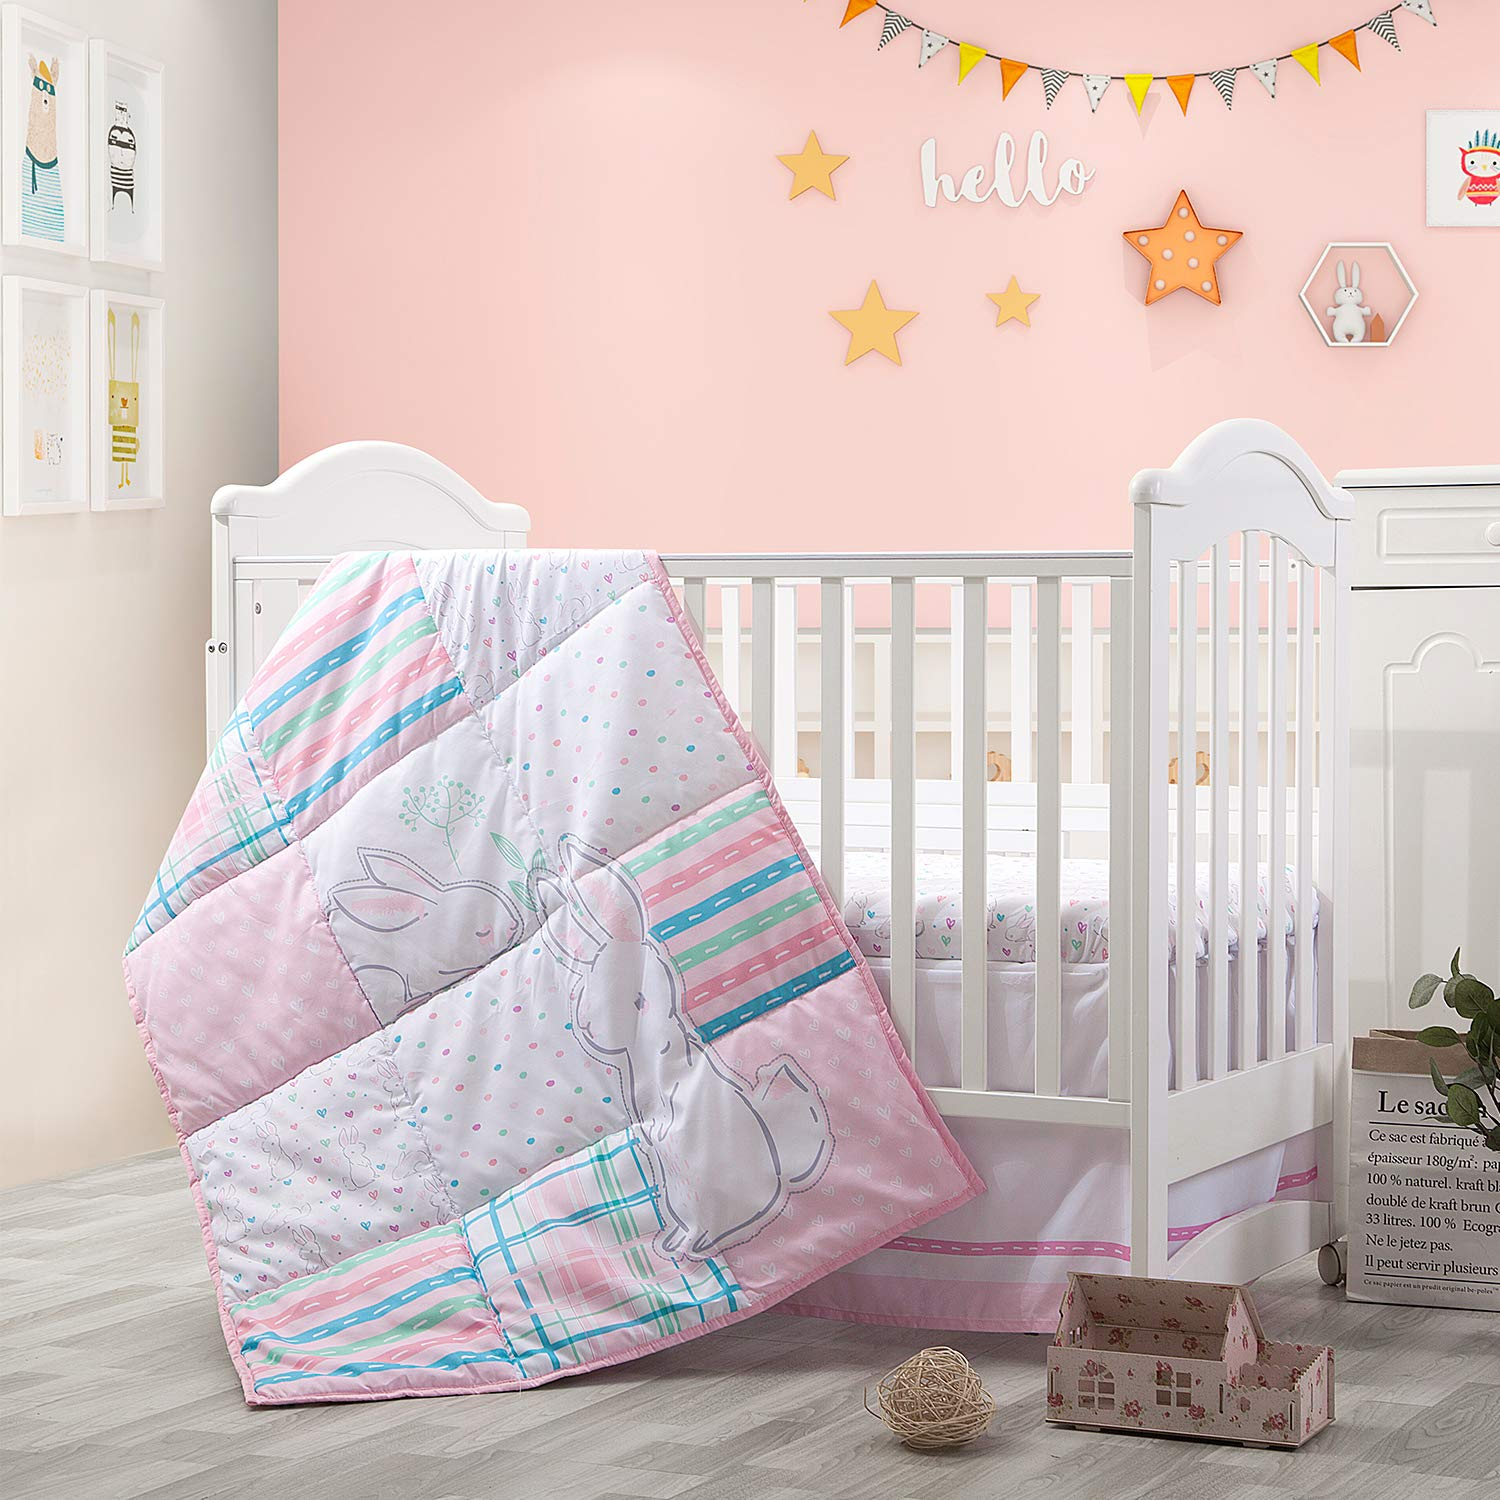 Little Grape Land 3-Piece Nursery Crib Bedding Sets, Soft Polyester Microfiber for Standard Size Crib Sets for Girls Pink/Purple/Grey/White, (Pink Garden)